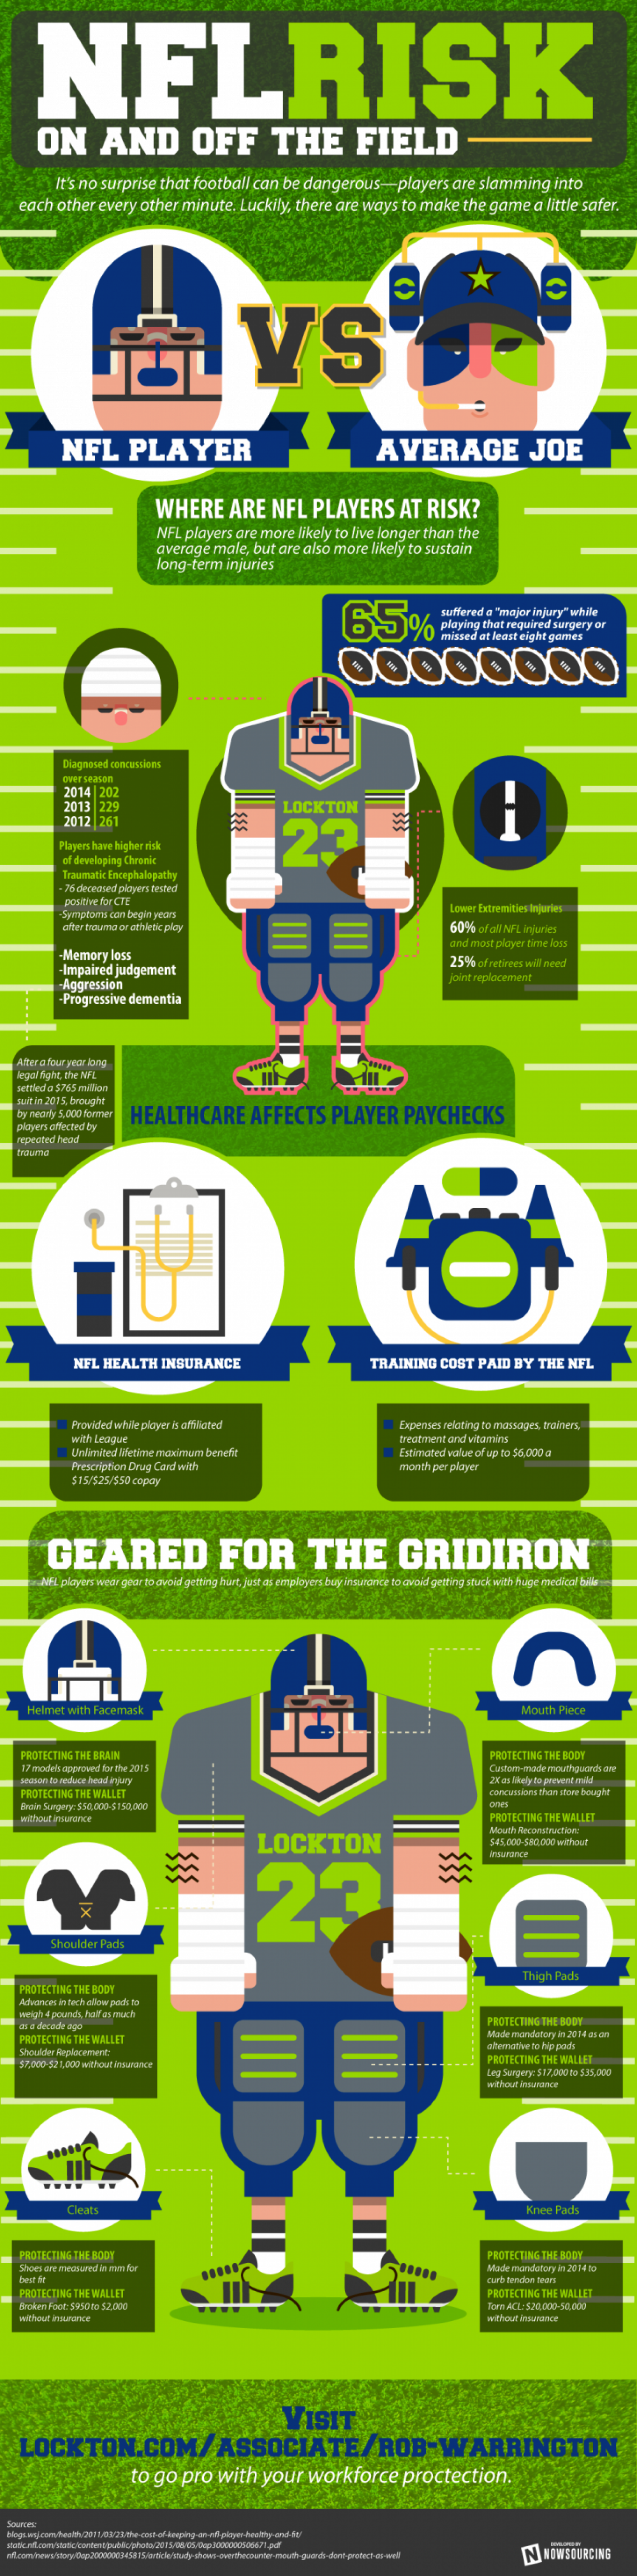 NFL Players And Injury Risk Infographic